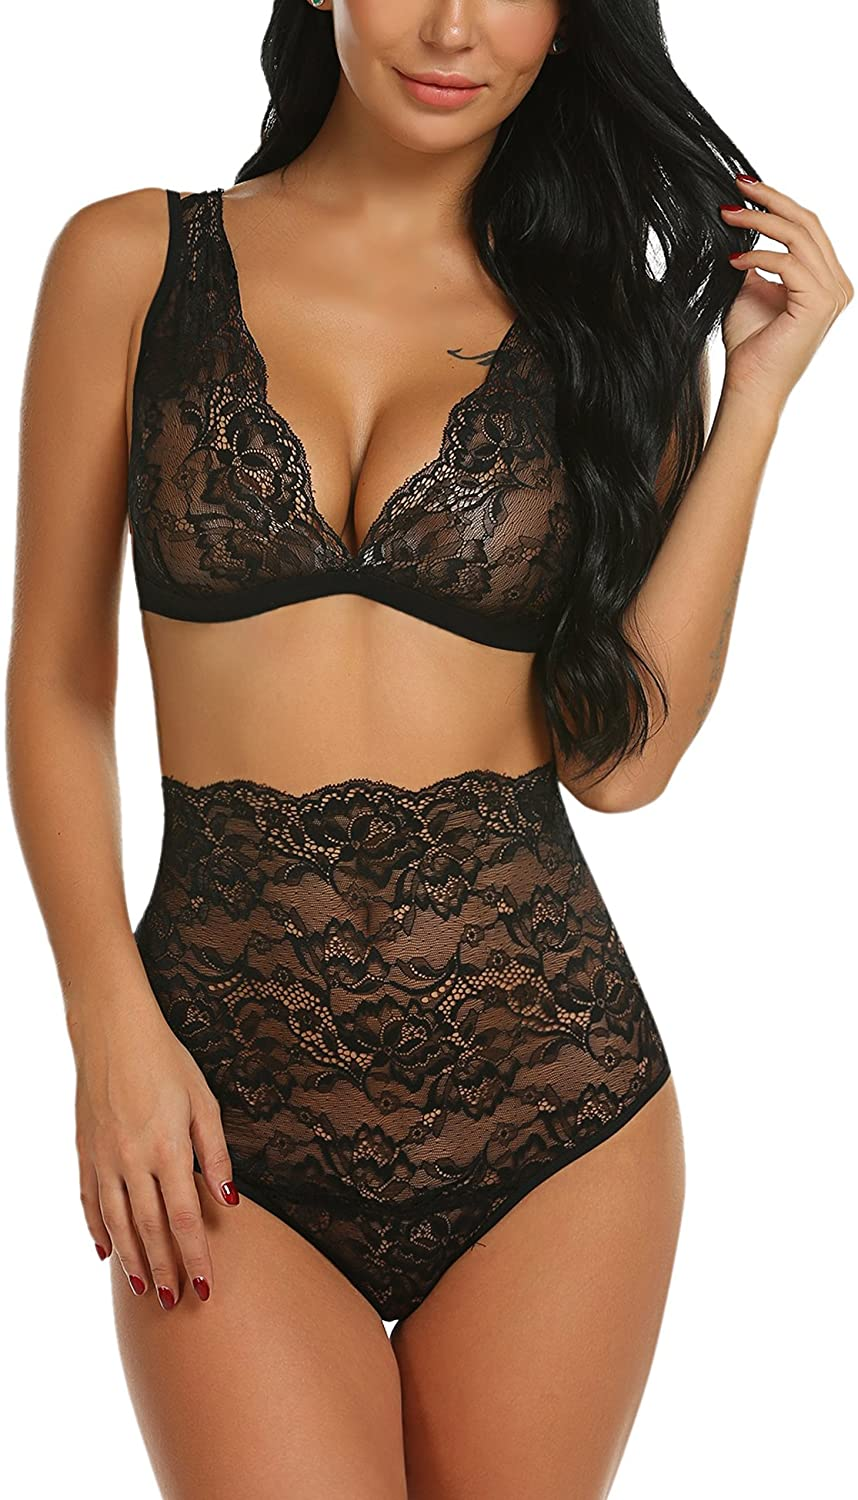 Avidlove Women Sexy Lace Lingerie High Waist Bra and Panty Set Strappy Babydoll